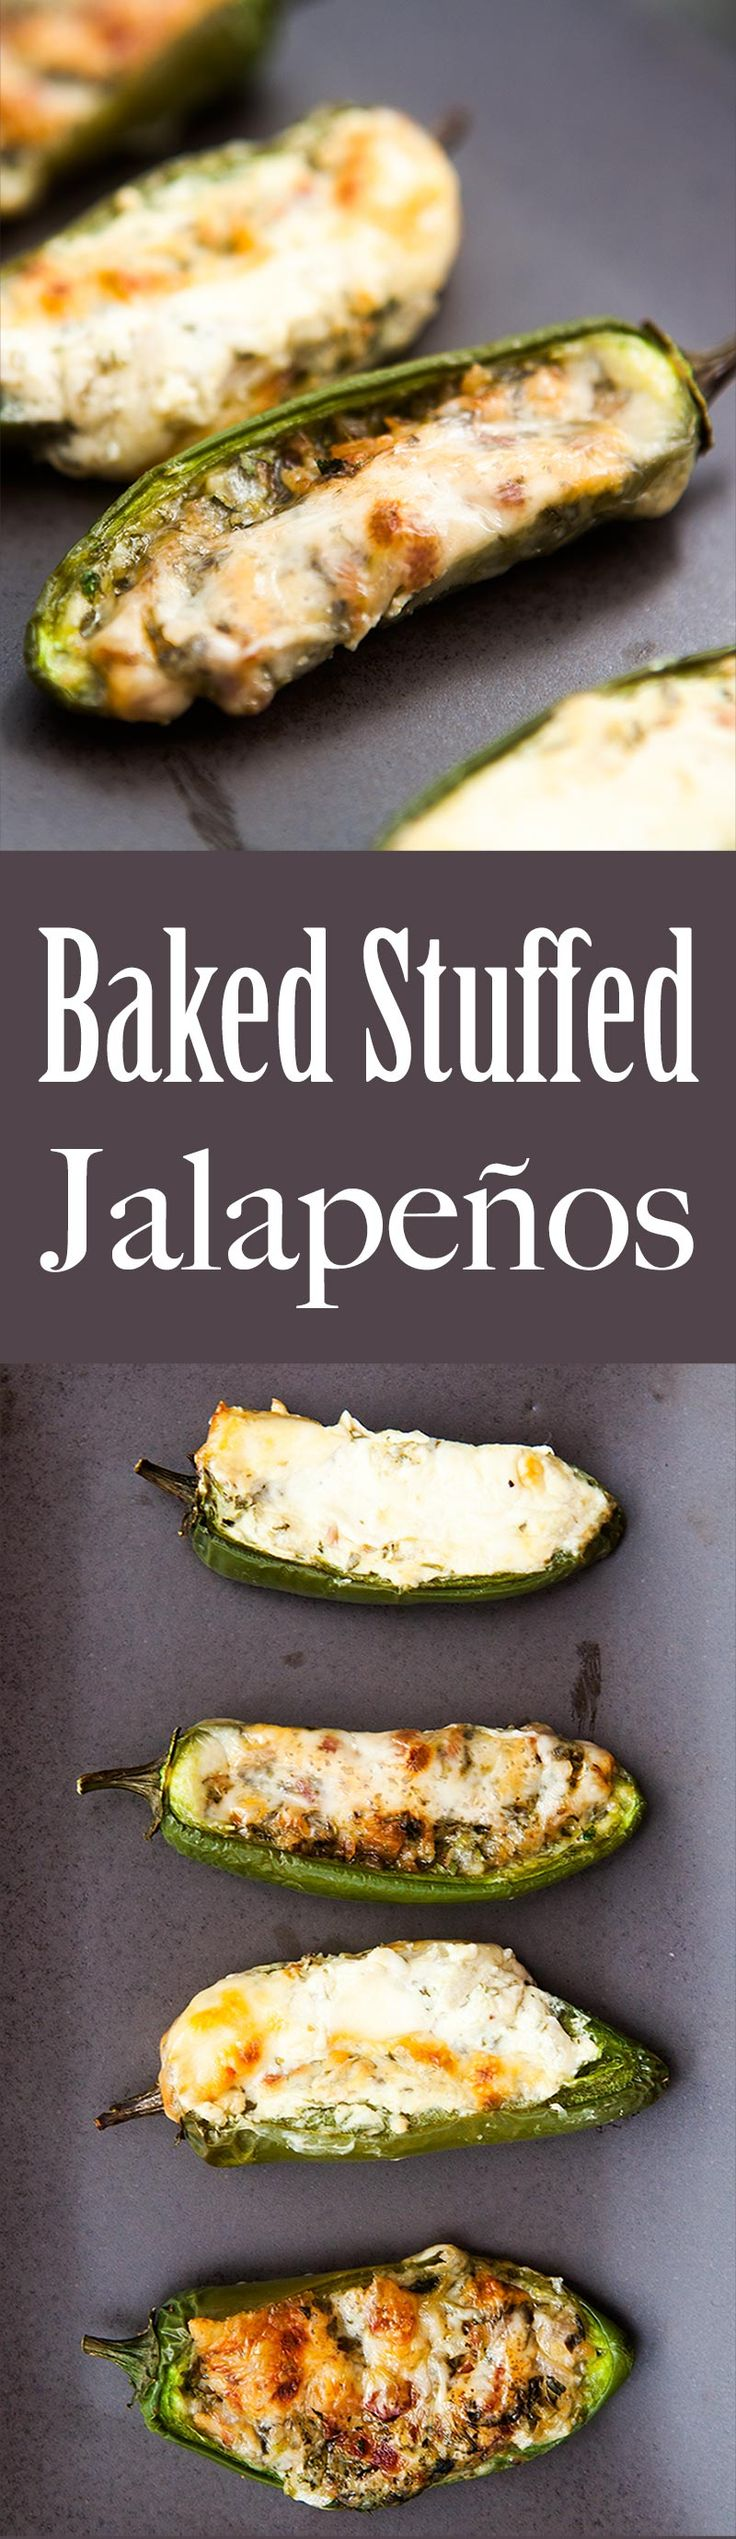 Baked stuffed jalapenos, Appetizers for a crowd and Stuffed jalapenos ...